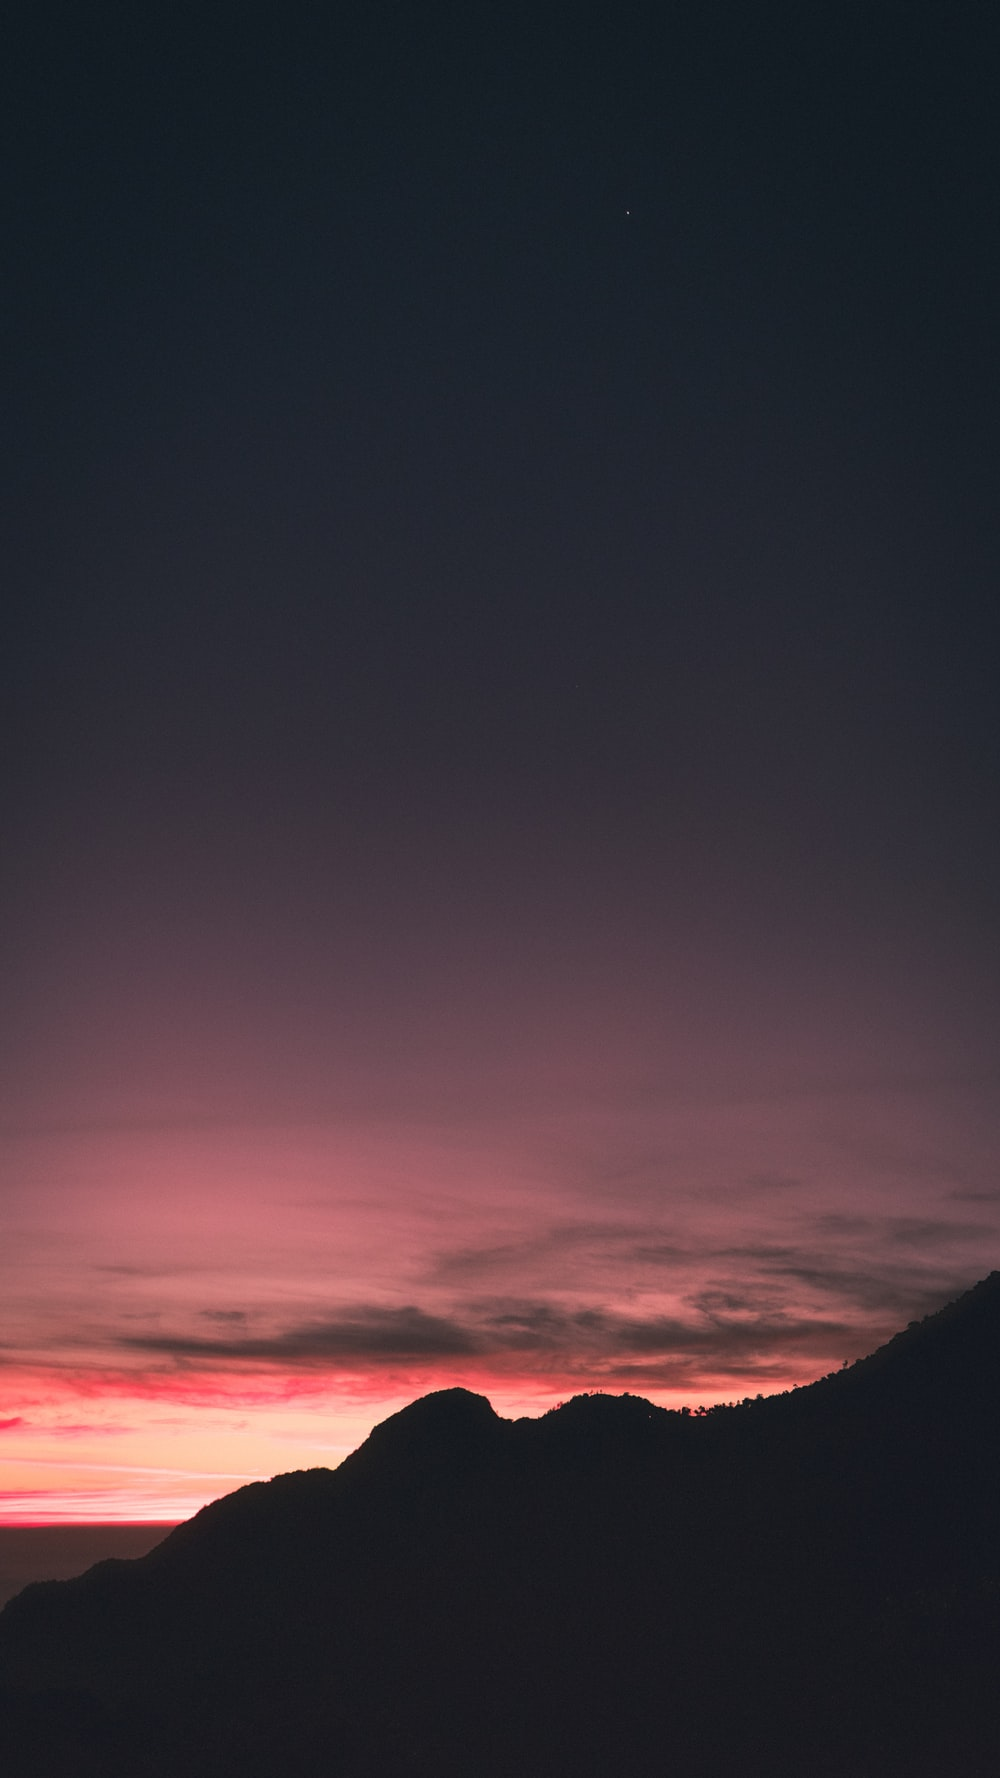 pink and grey sky over mountain during sunset